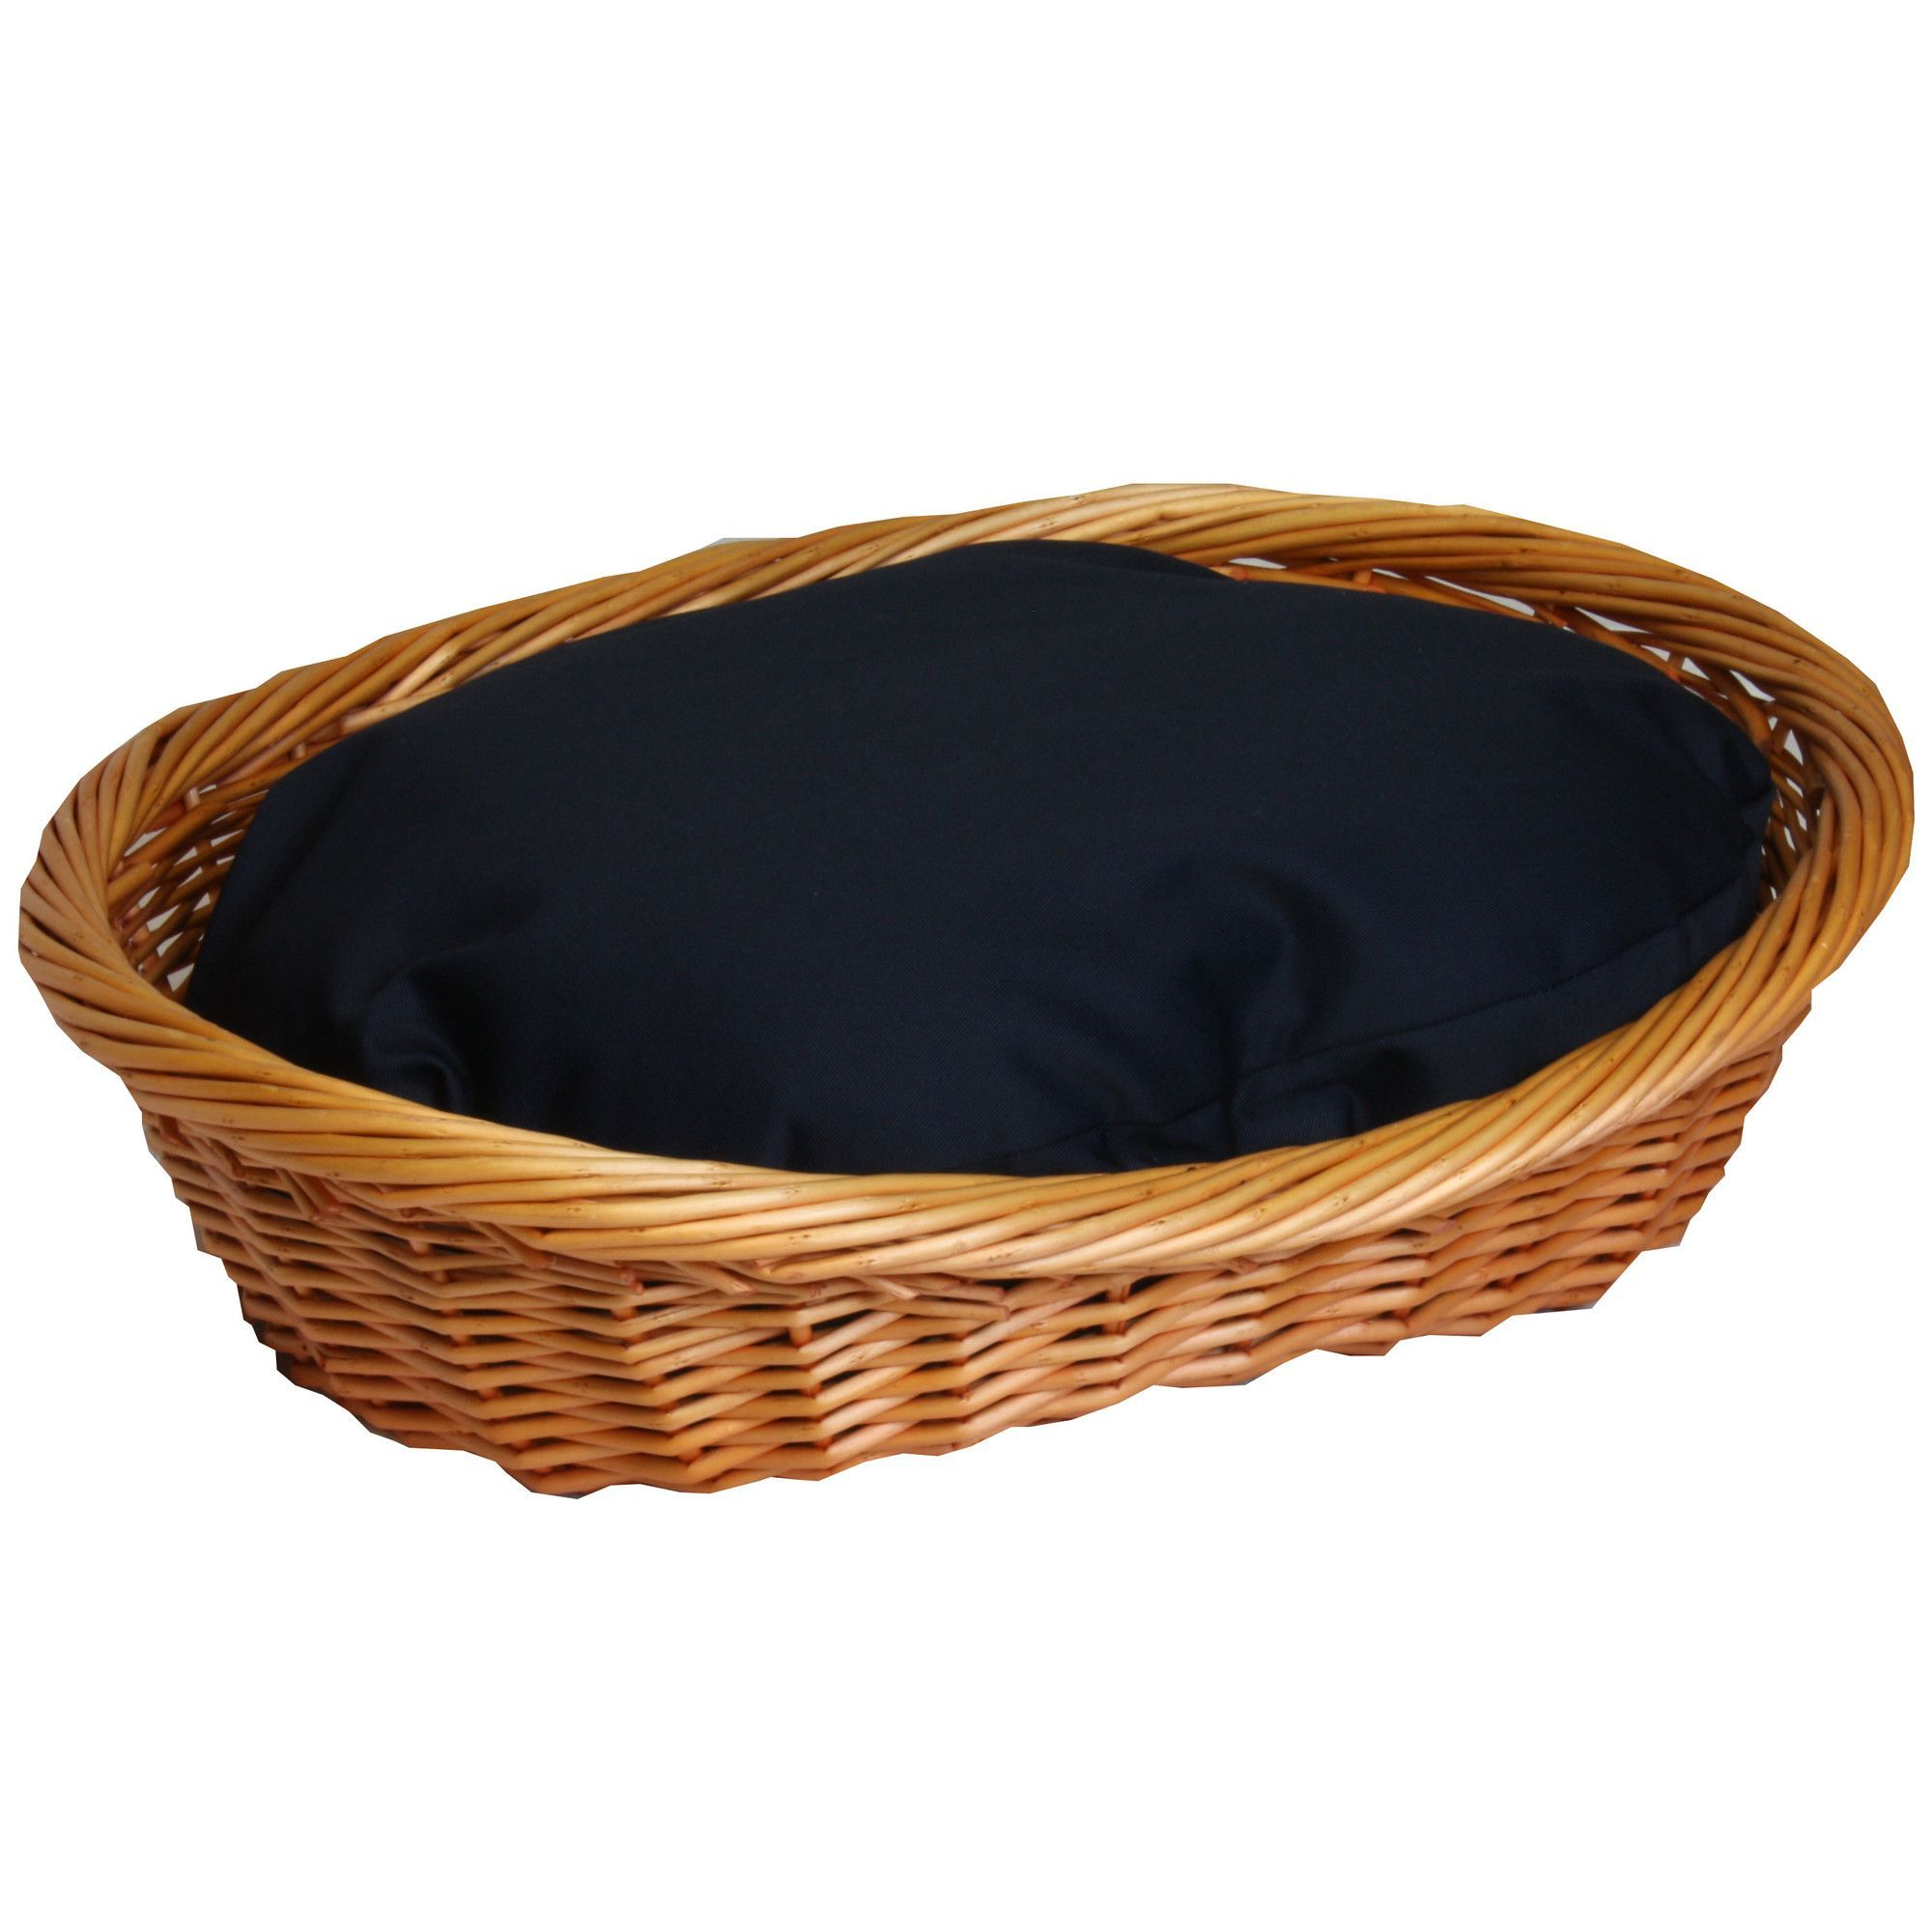 Wicker Dog Basket and Bed Dog bed mat, Old wicker, Wicker